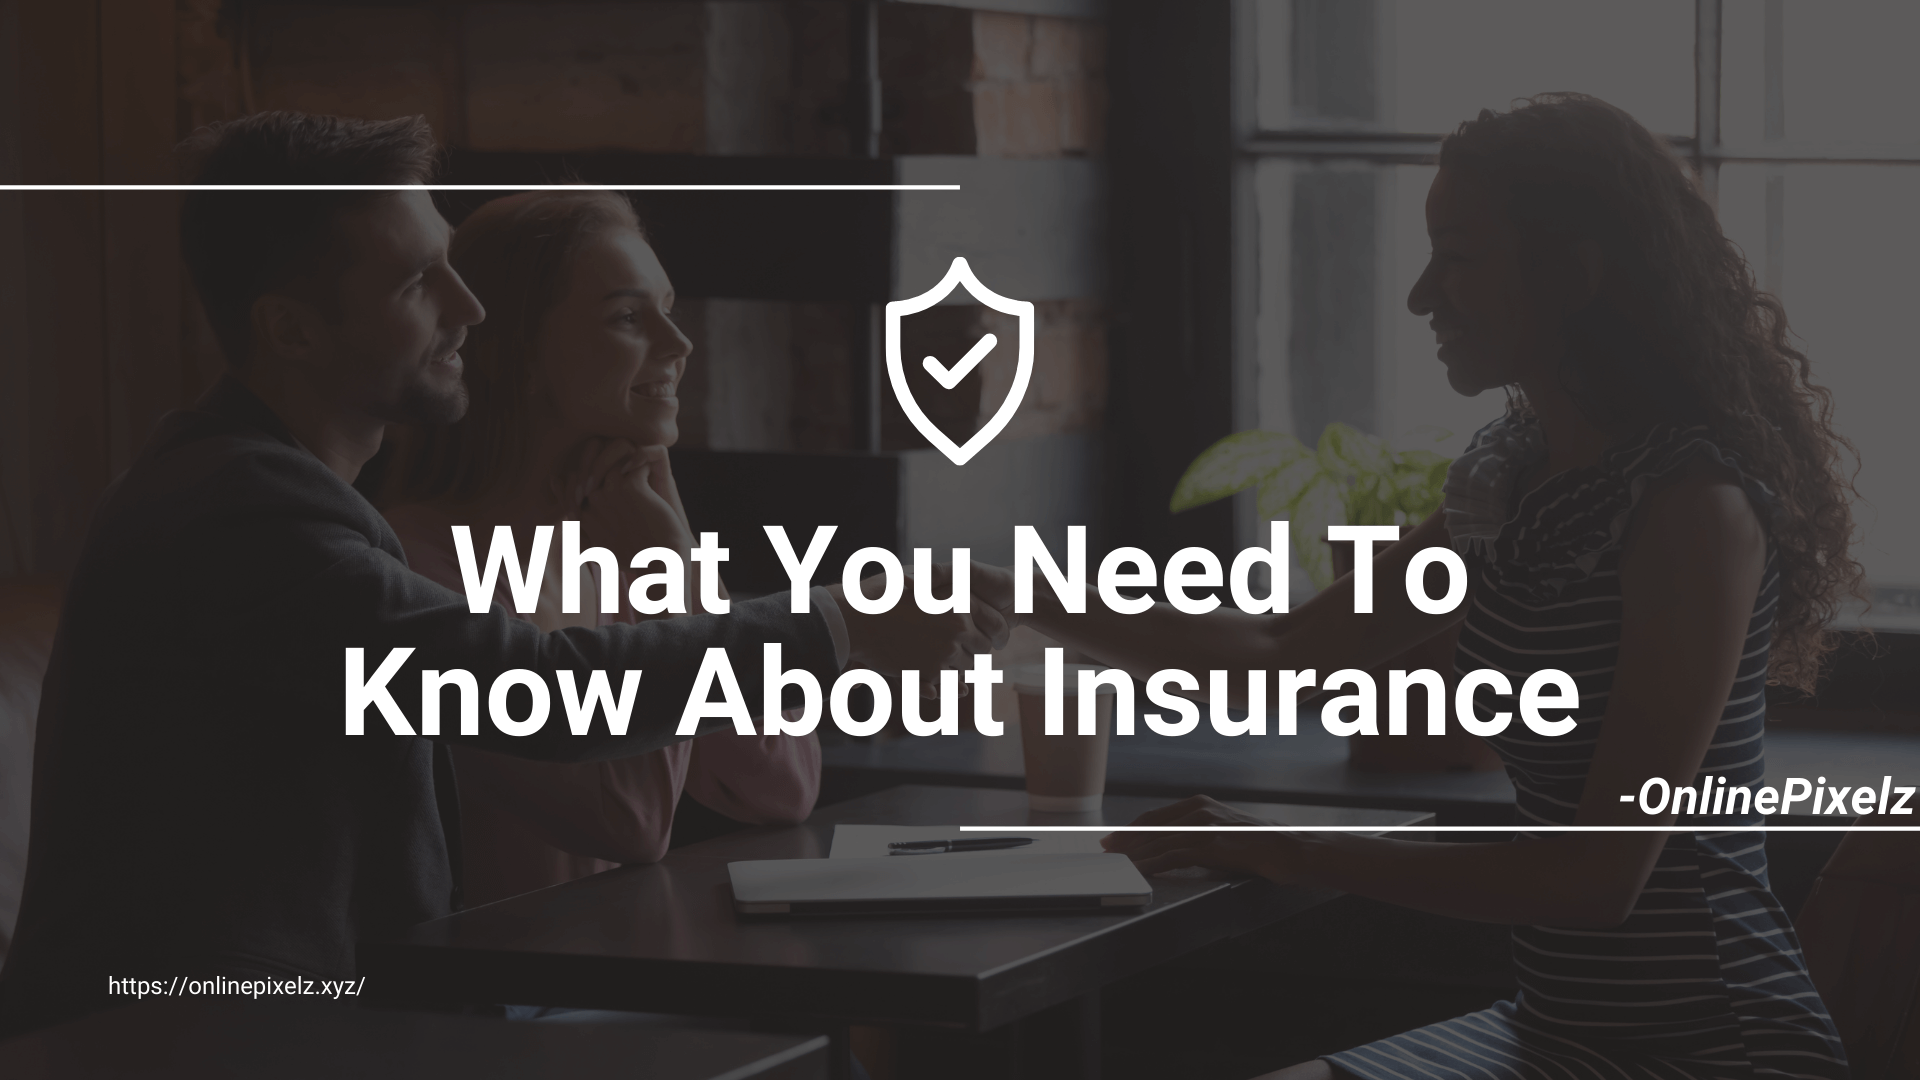 What You Need To Know About Insurance